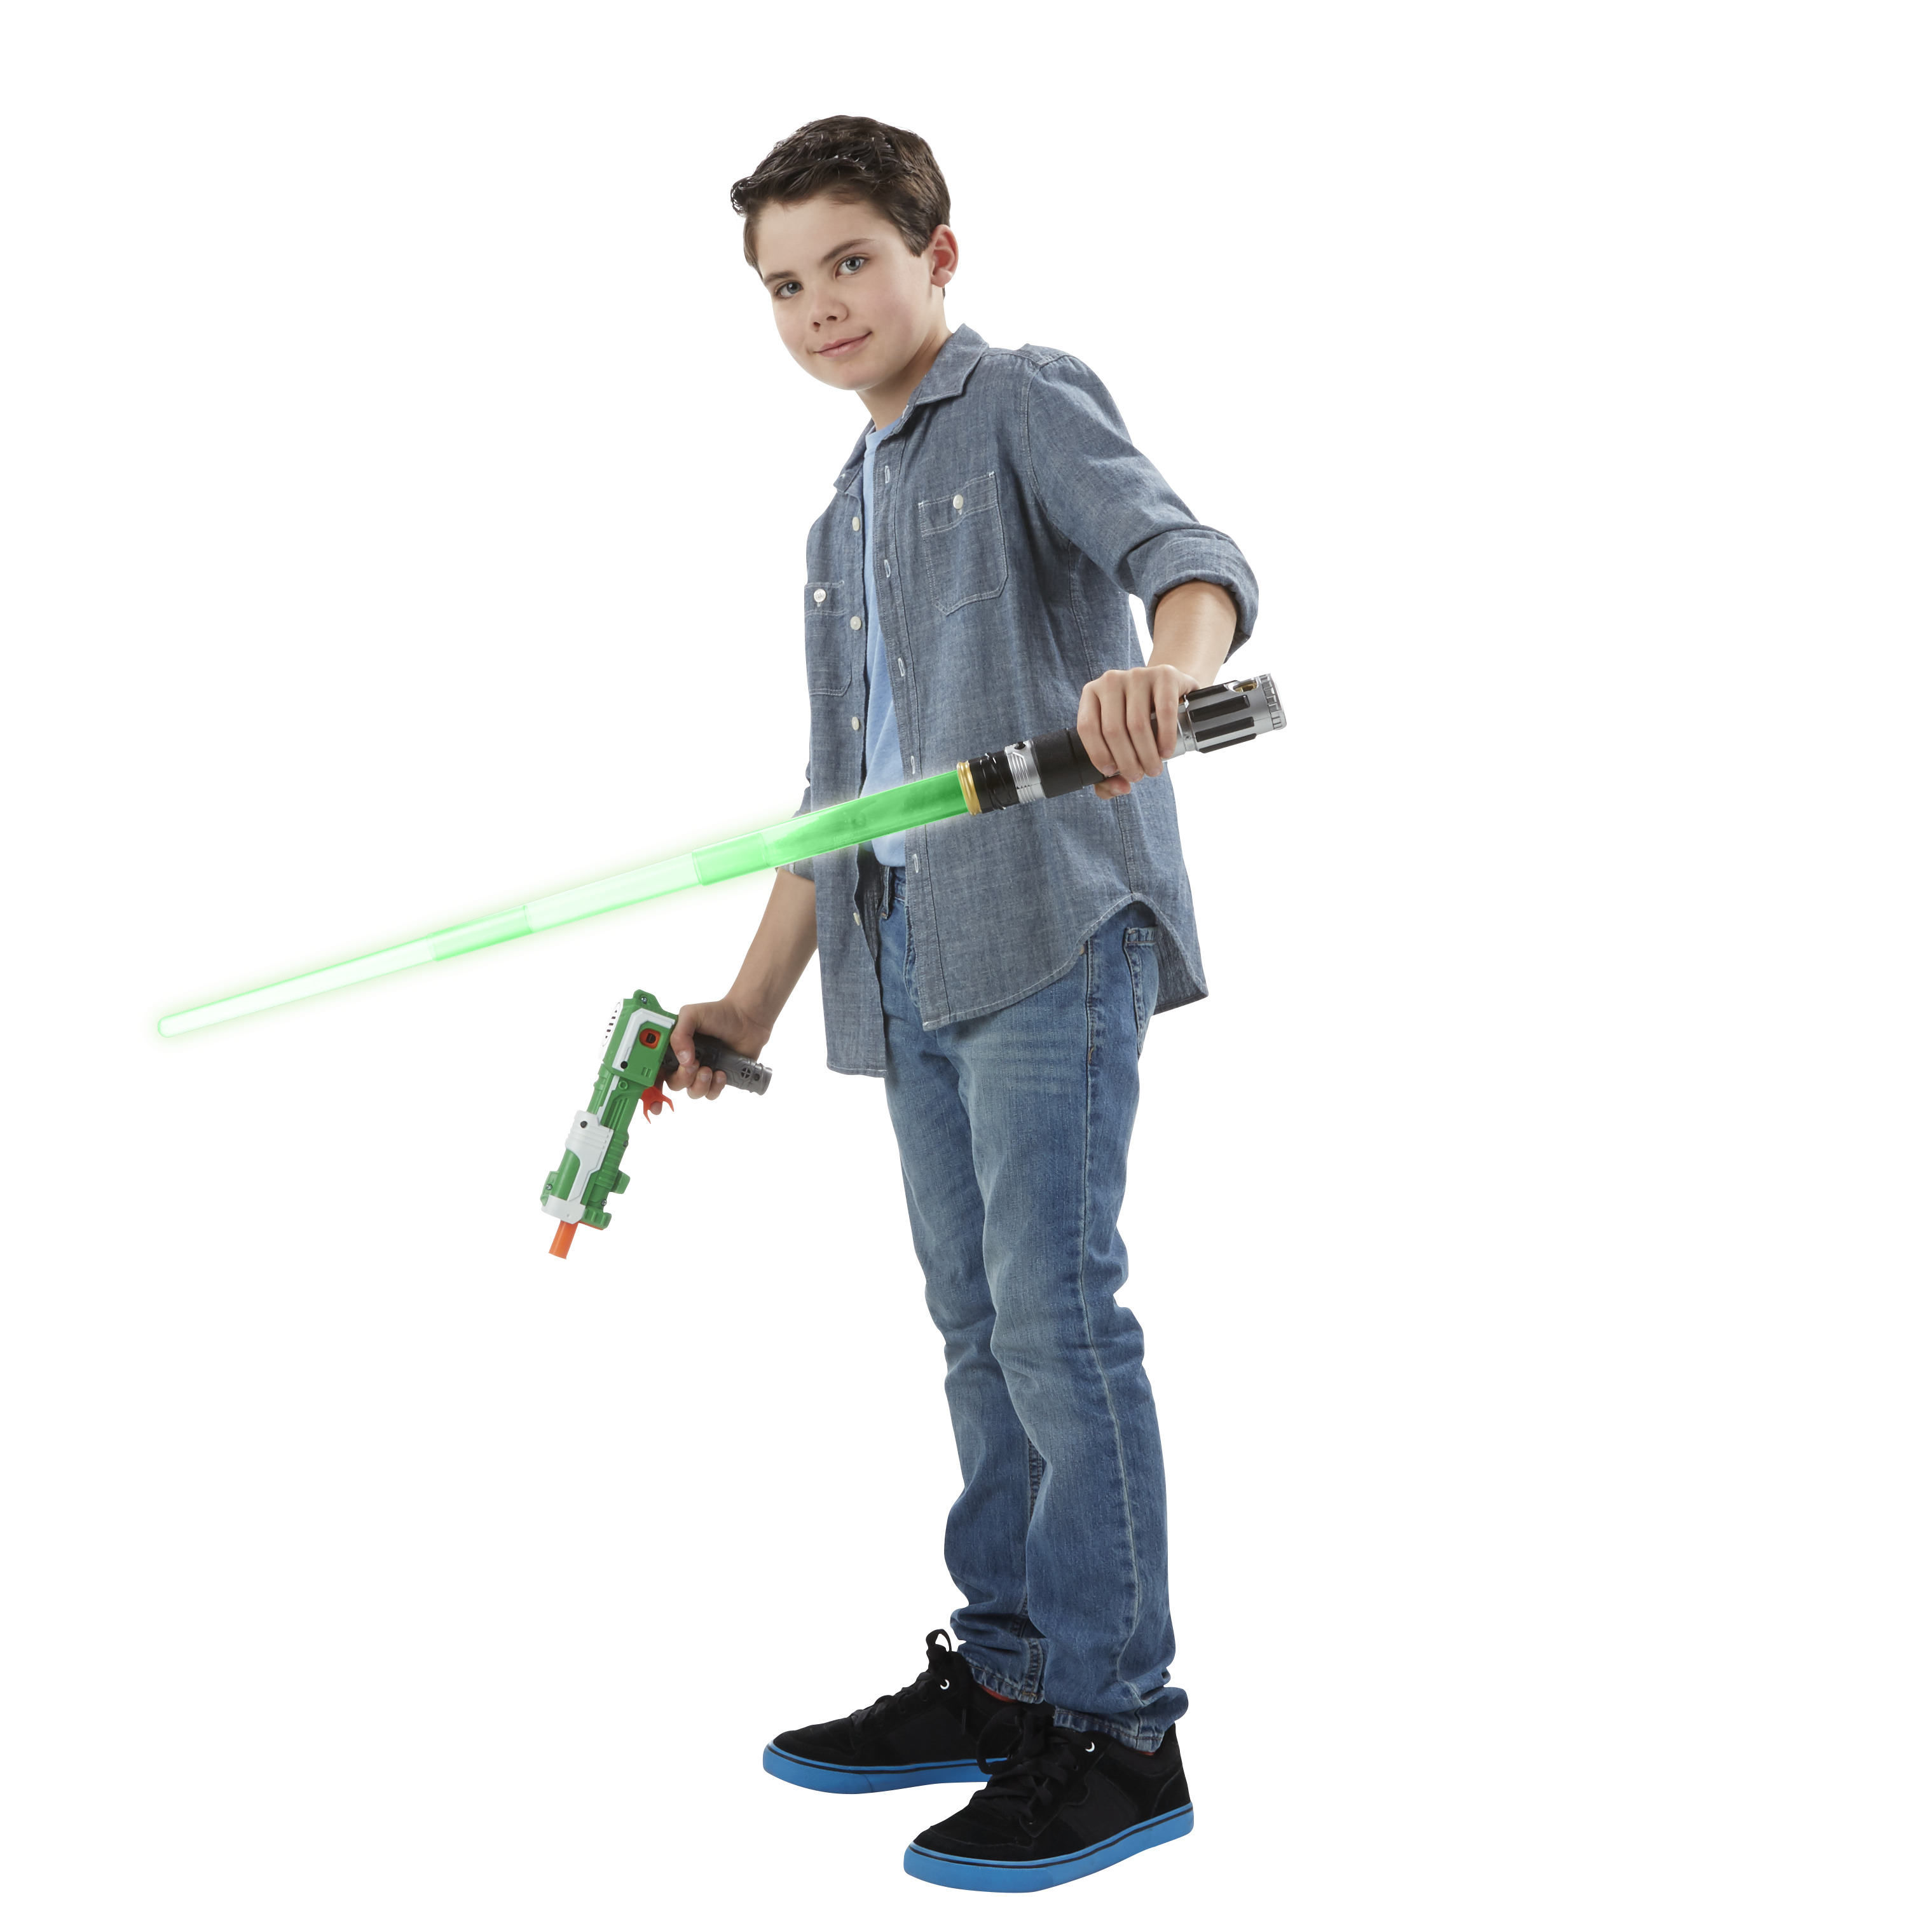 b8264as00_dad_sw_s1rpprojectilefiringlightsaber_life_11747_large_300dpi